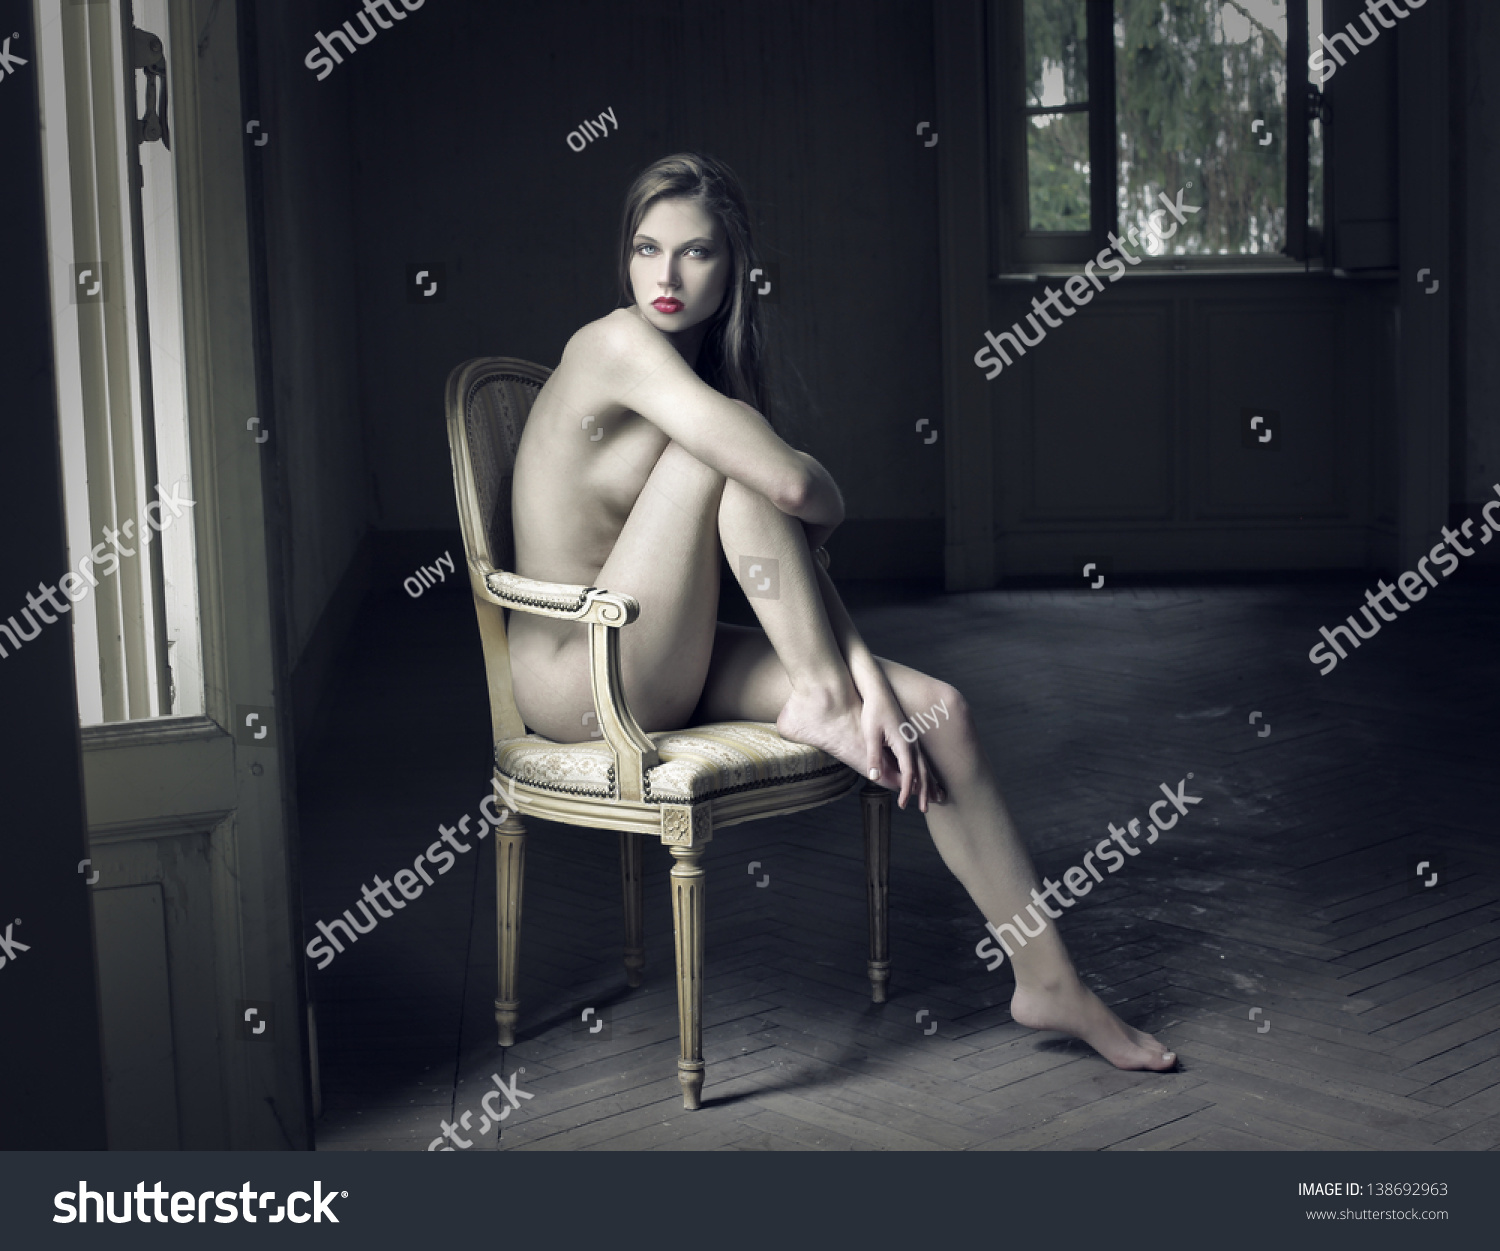 Willing wife poses nude